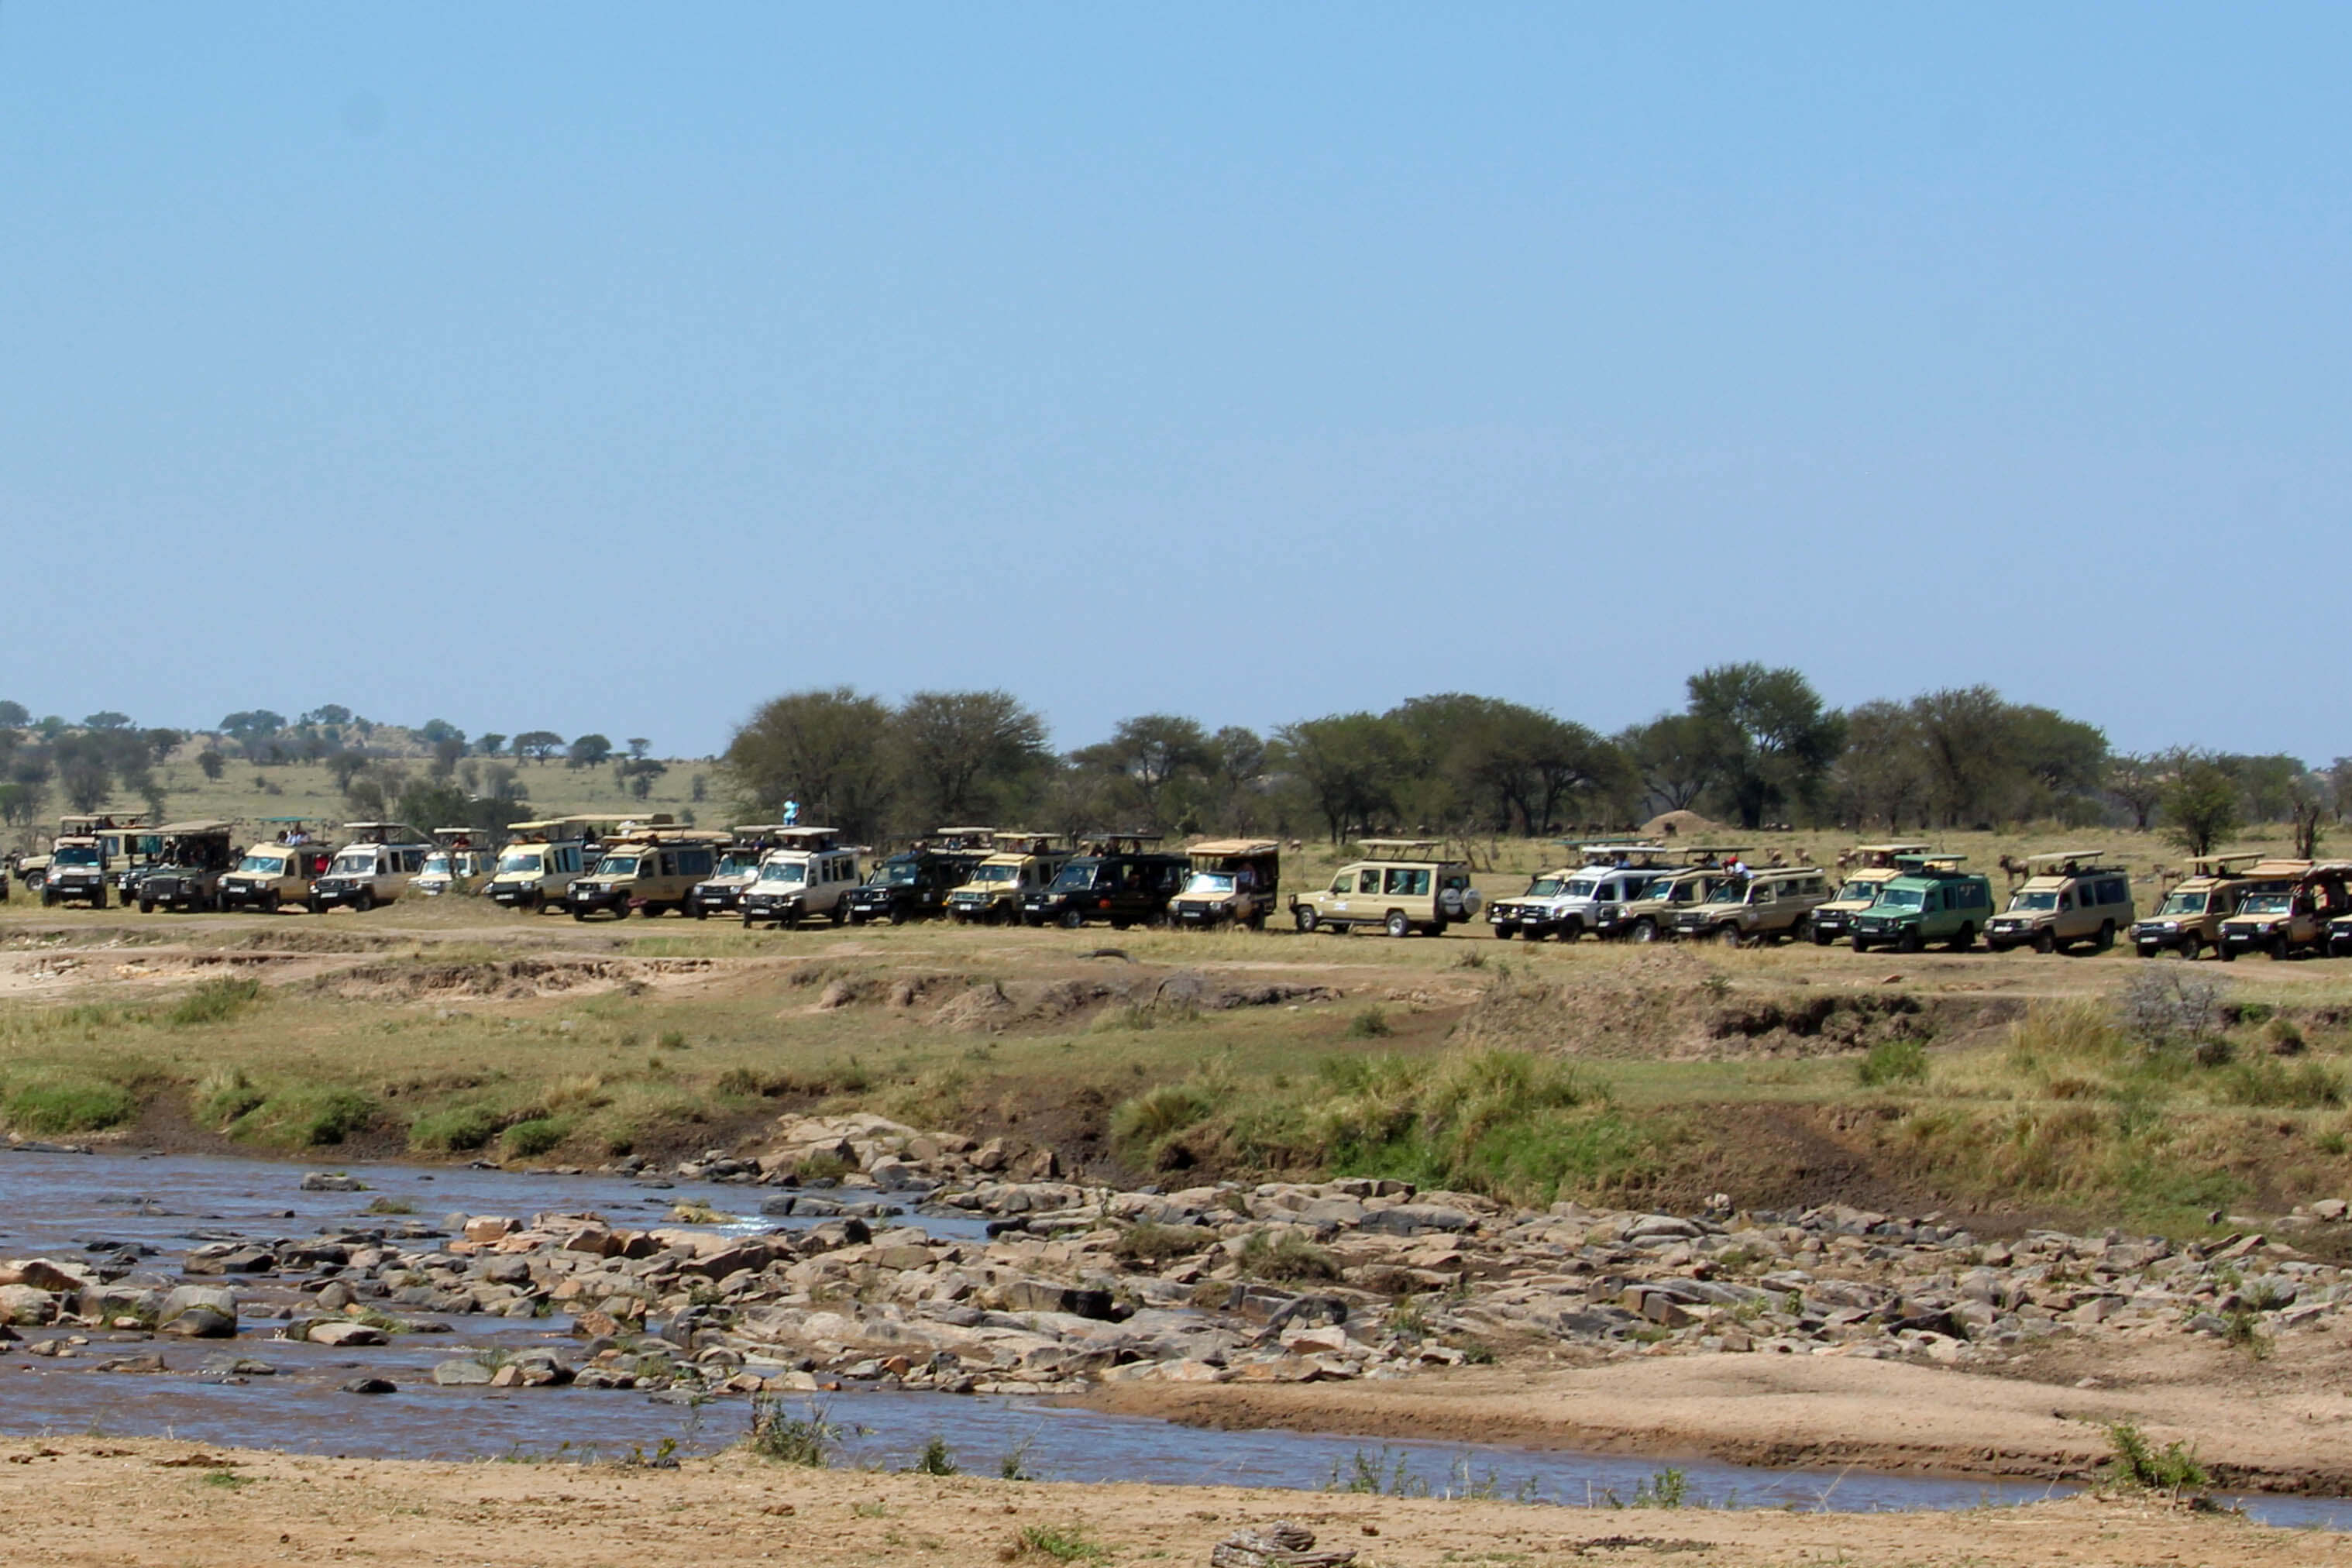 Choosing the best time to go on a luxury safari in Africa - consider the crowds during the Great Migration